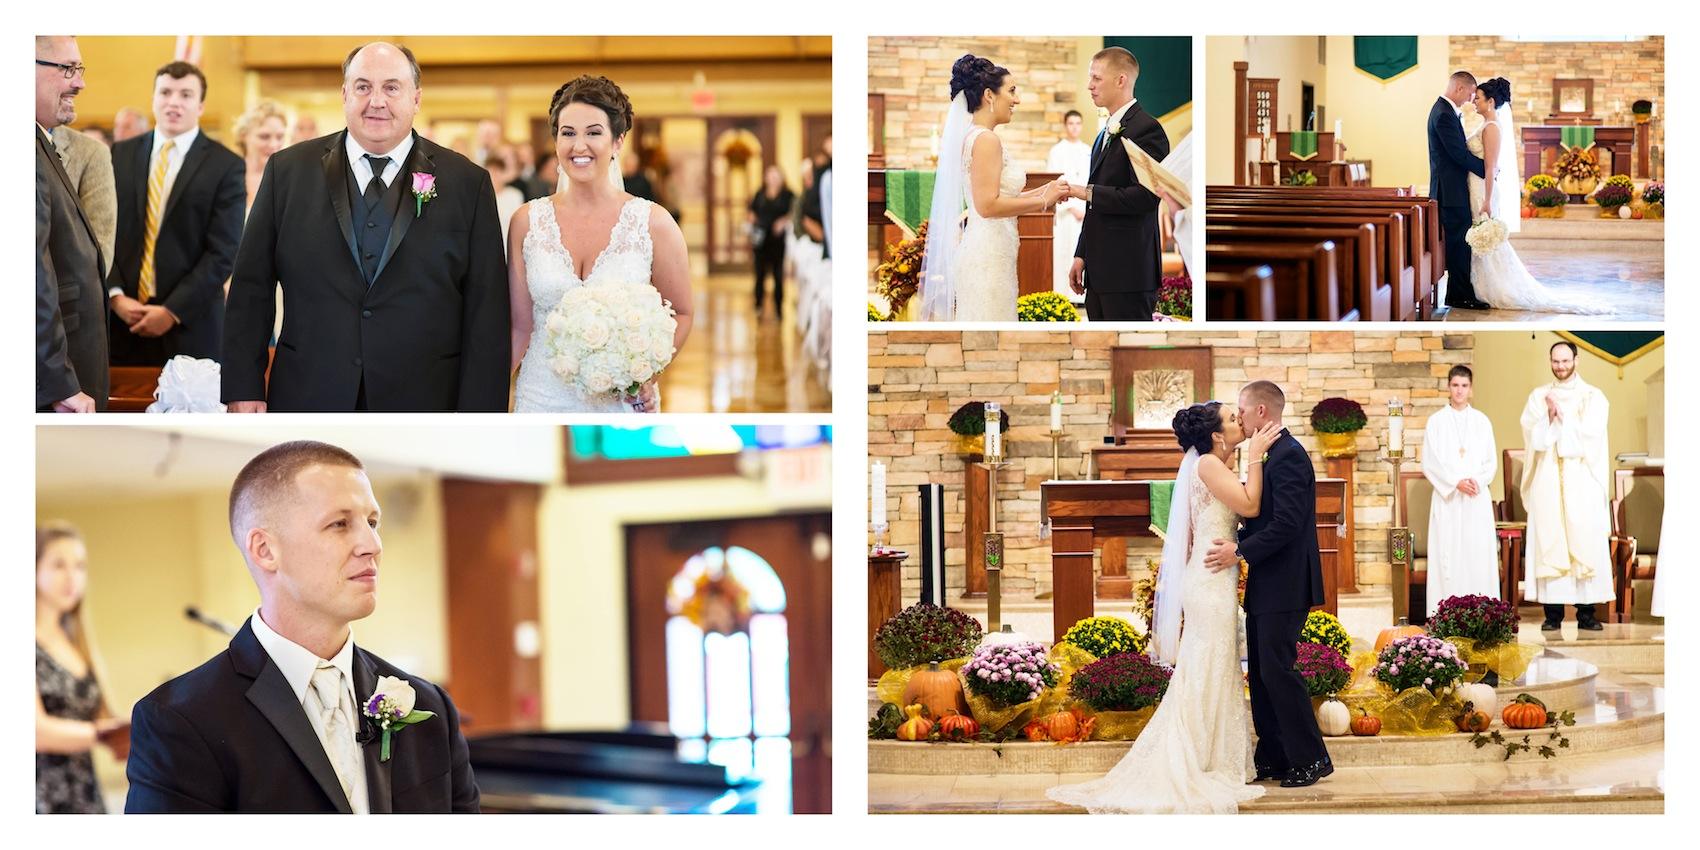 colleen-and-tommy-ceremony-album-page-from-new-jersey-wedding-photographers